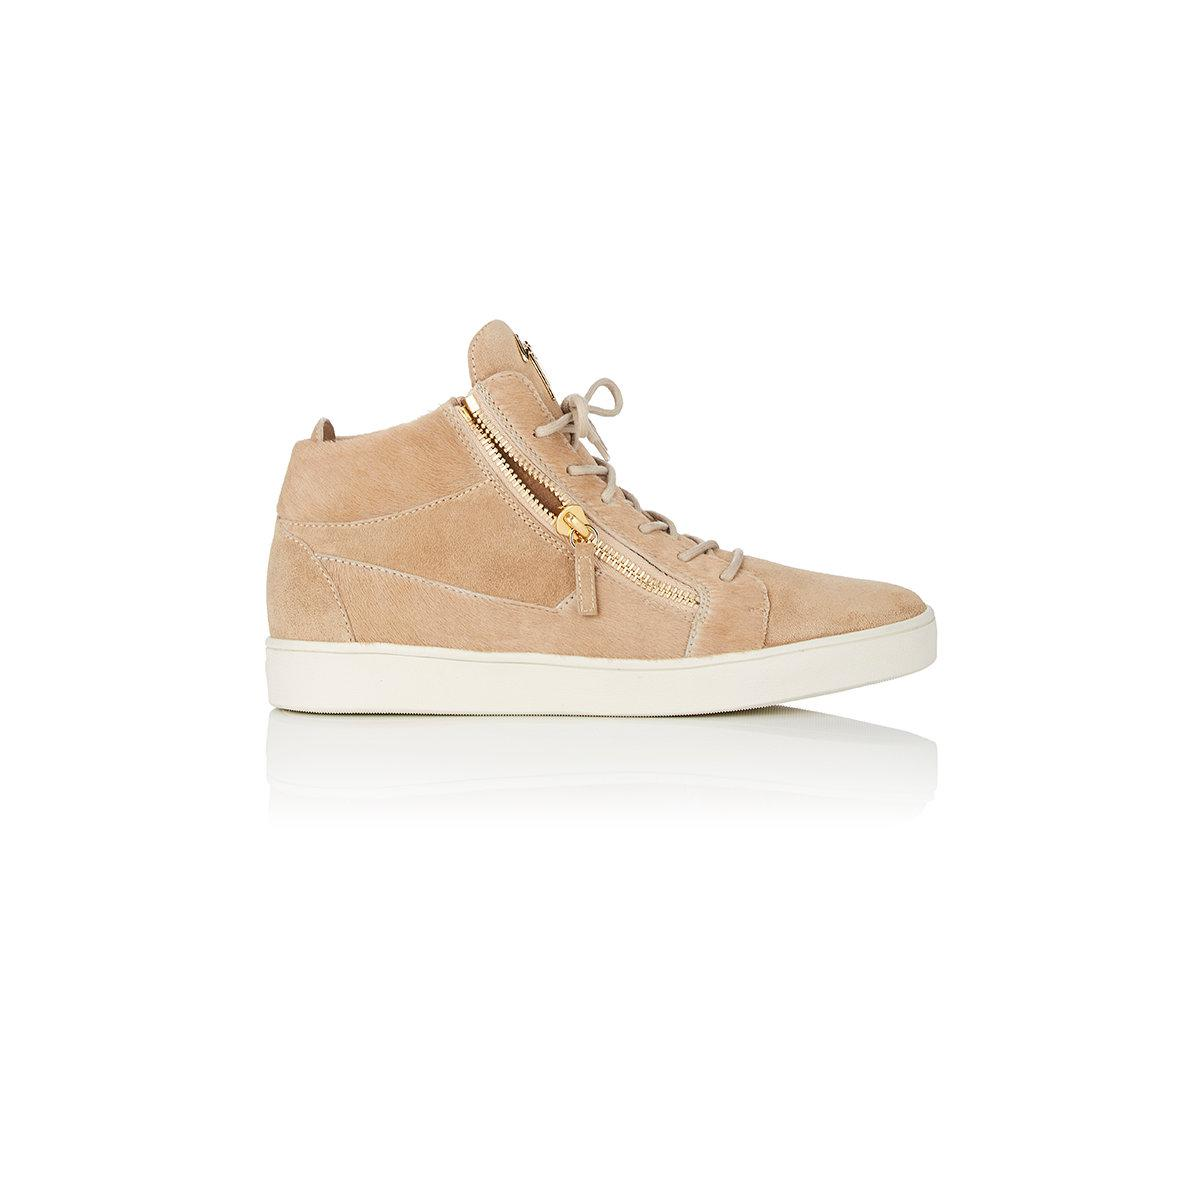 Giuseppe ZanottiCalf leather and beige suede low-top sneaker DOUBLE